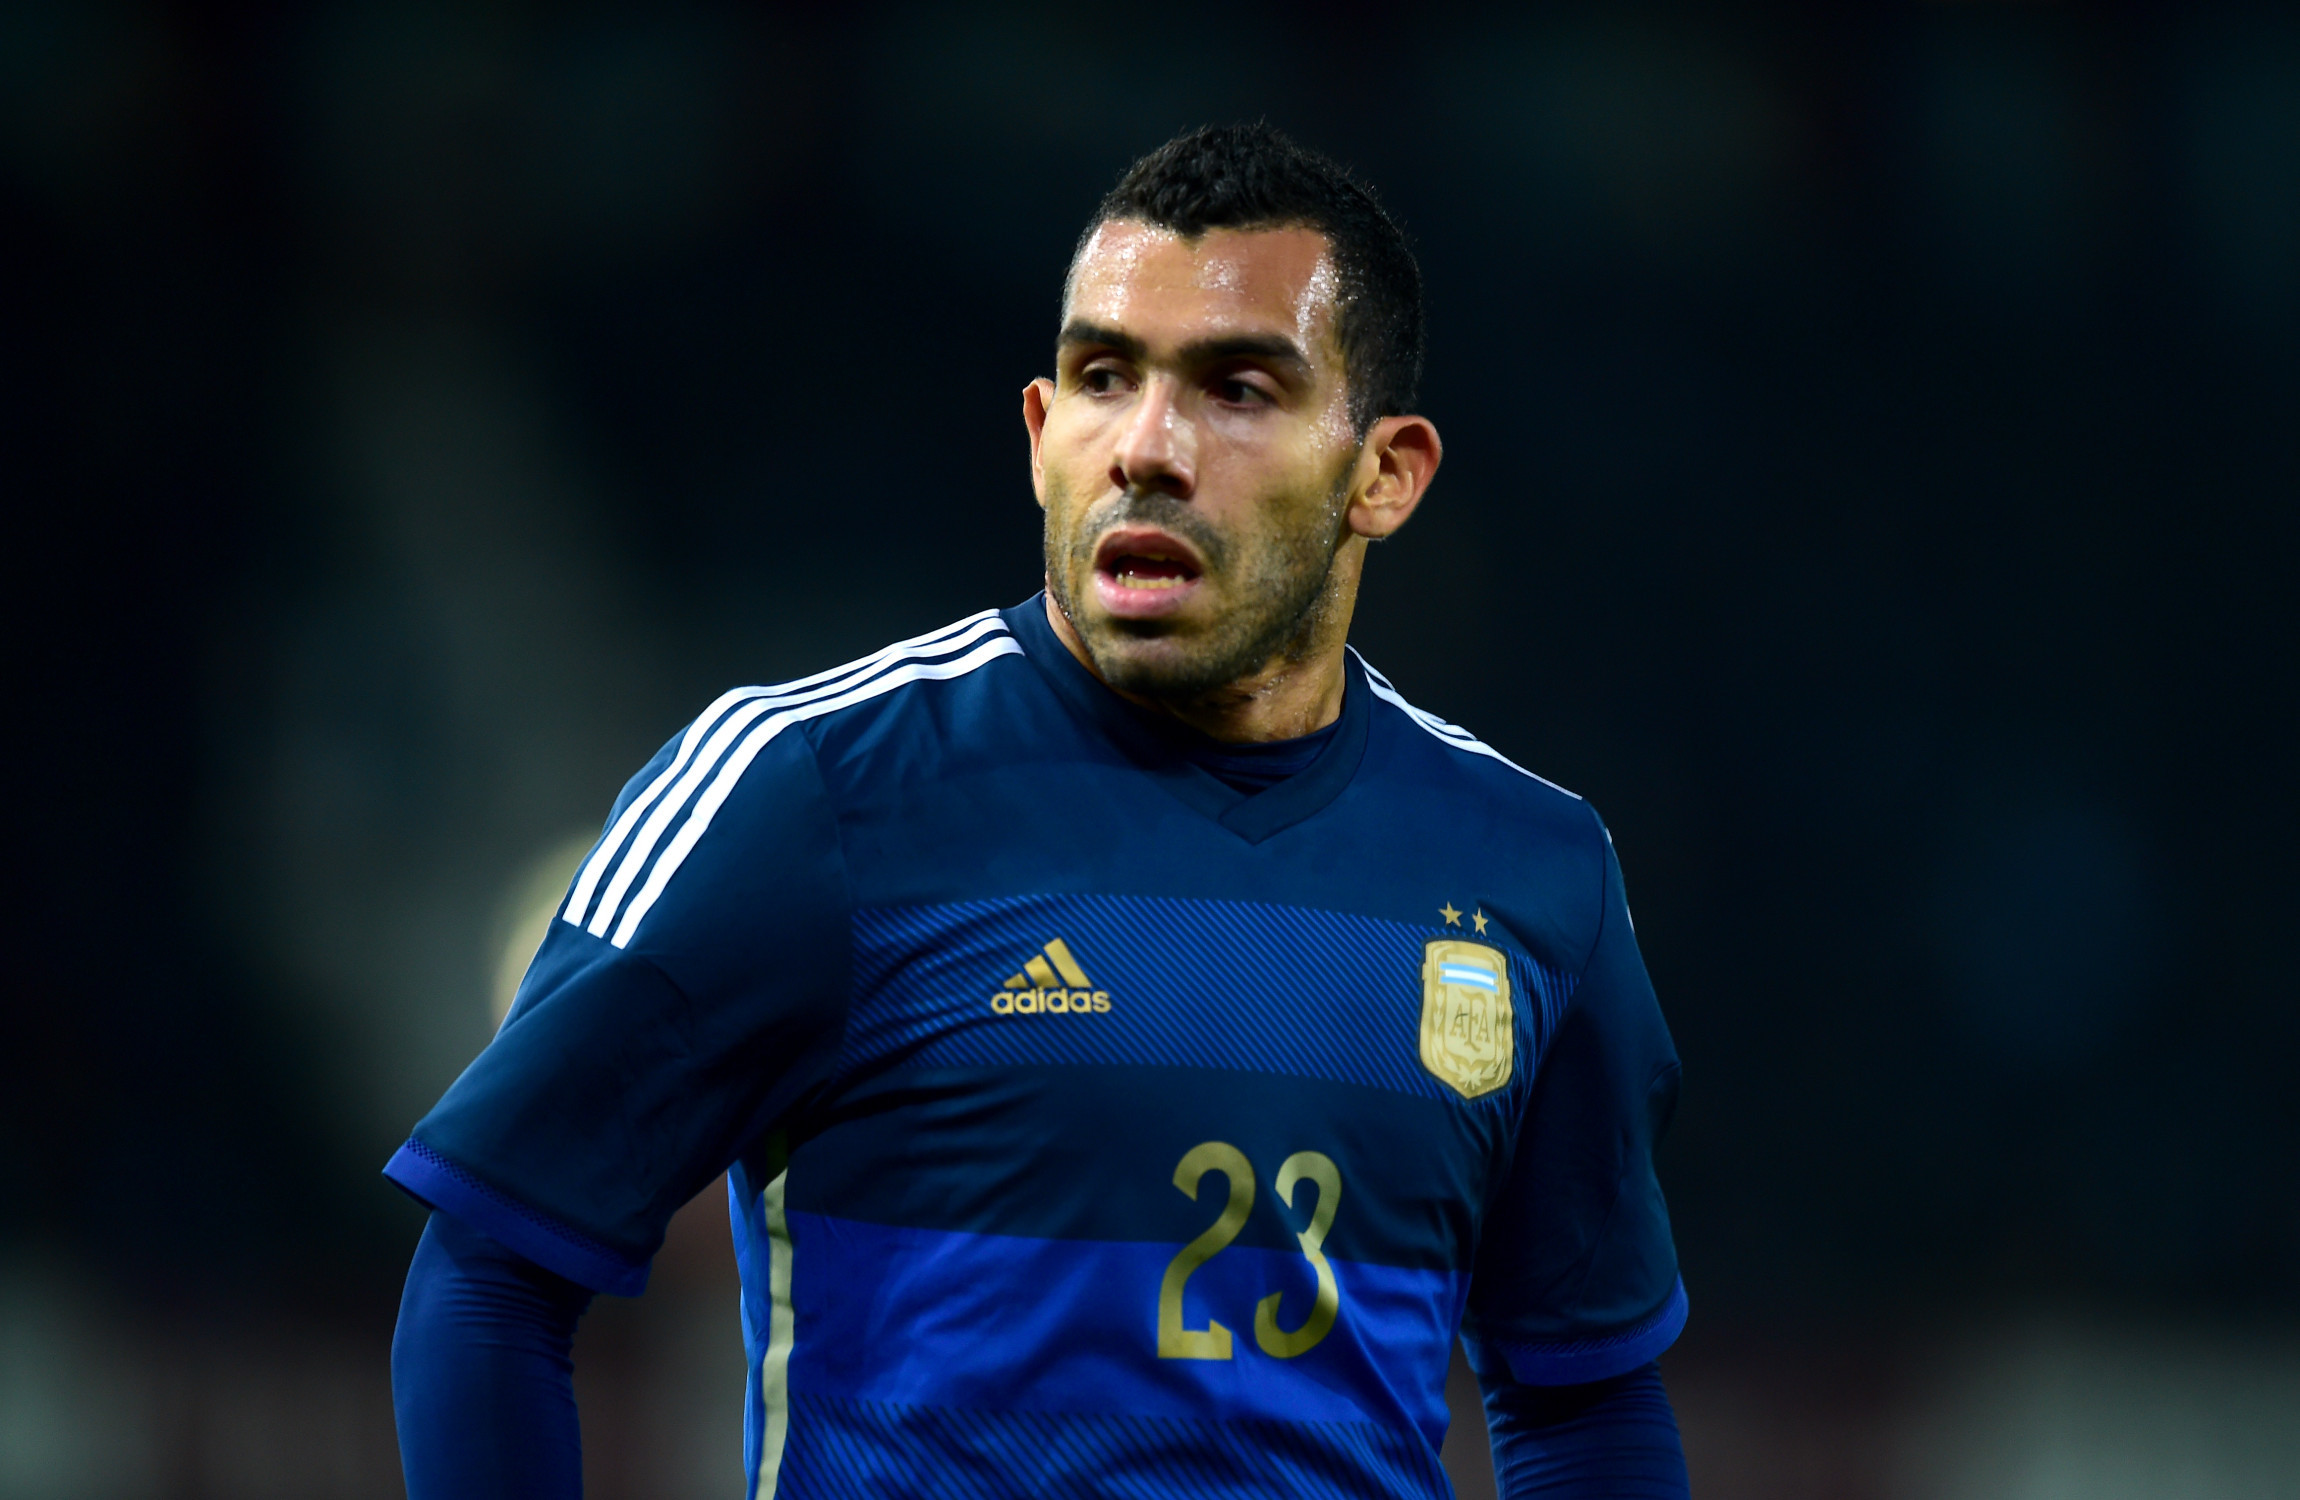 Different Tevez in extra training to shed weight · The42